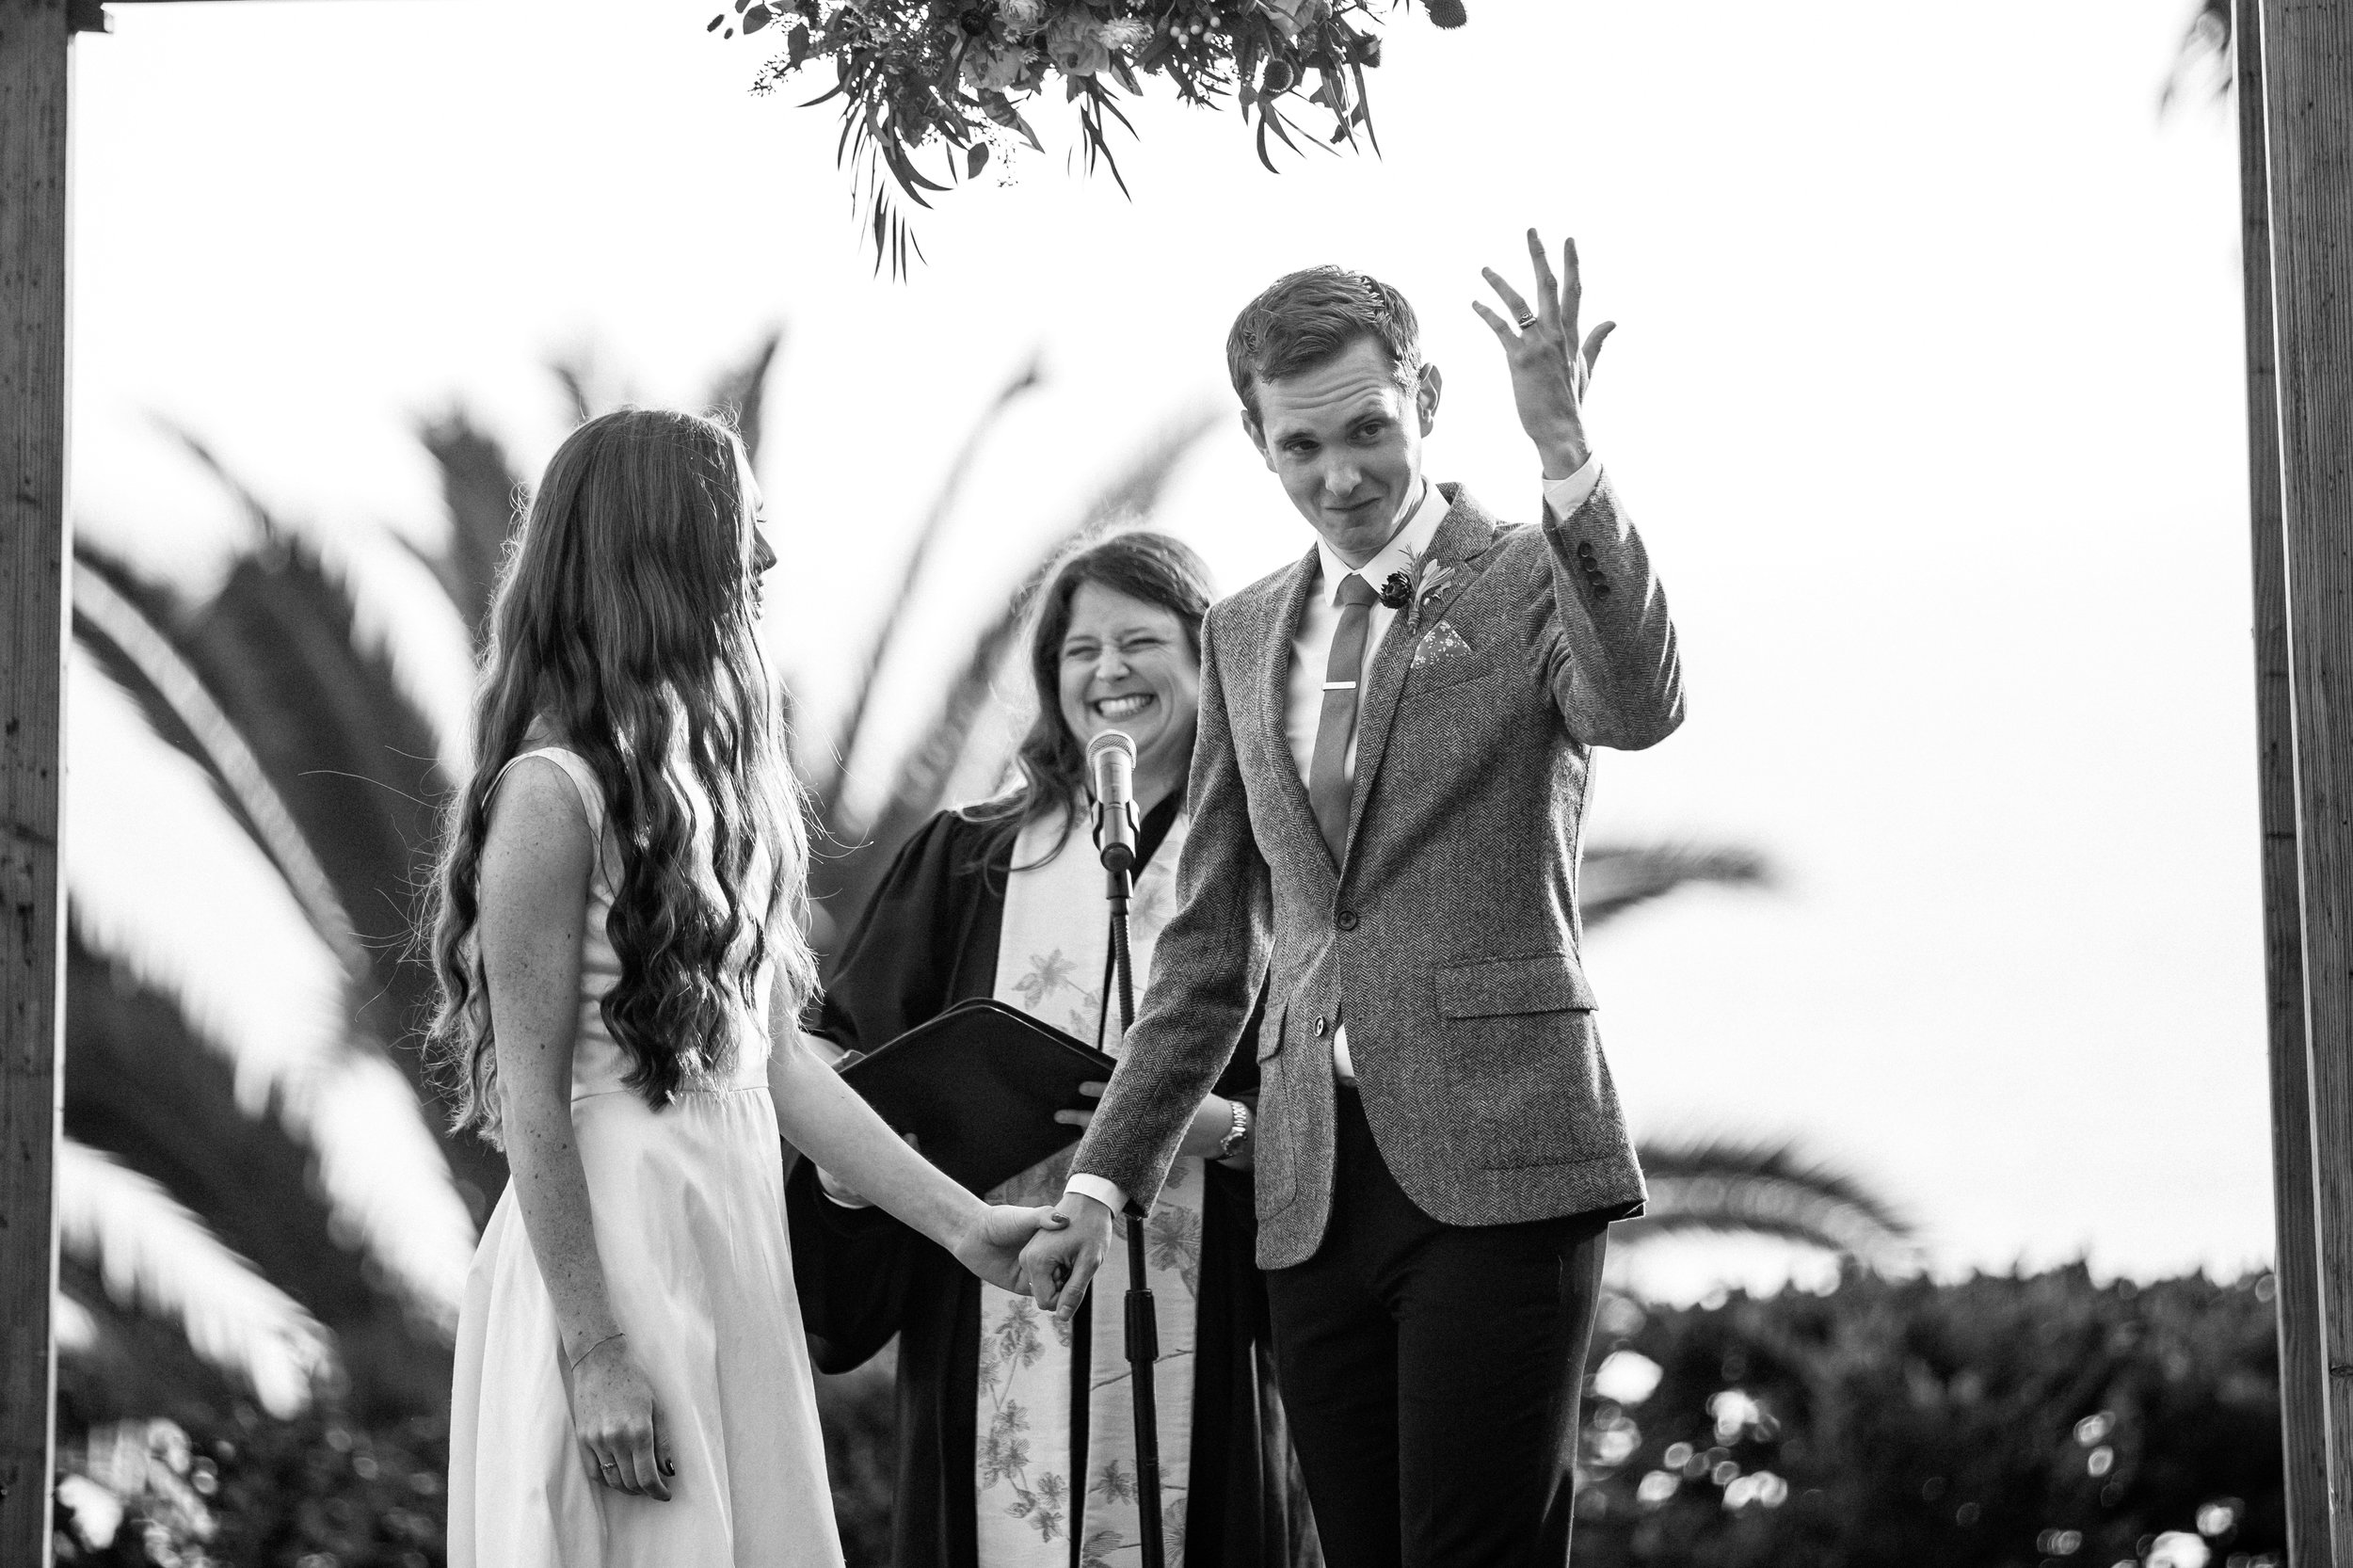 bel air bay club pacific palisades los angeles wedding photographer documentary candid30.JPG